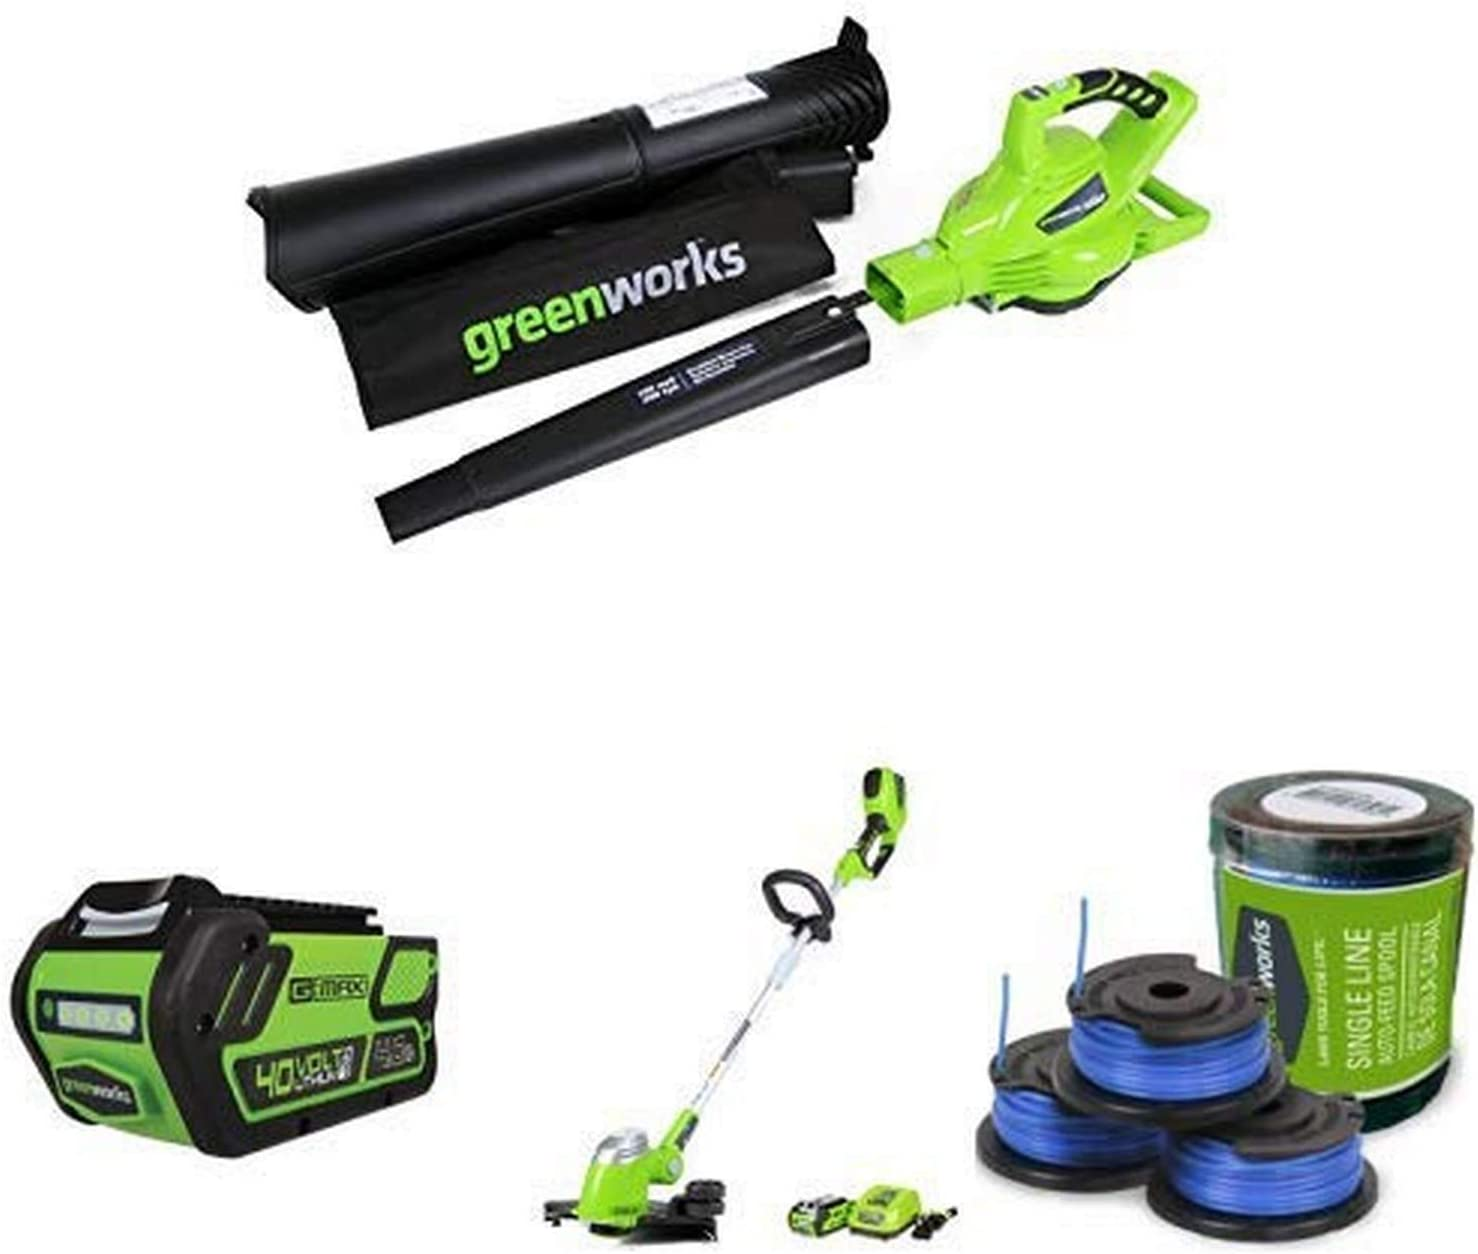 Greenworks 40V Variable Speed Cordless Blower Vacuum, Battery Not Included with Lithium Ion Battery, Cordless String Trimmer, Battery Included and Single Line String Trimmer Replacement Spool 3-Pack